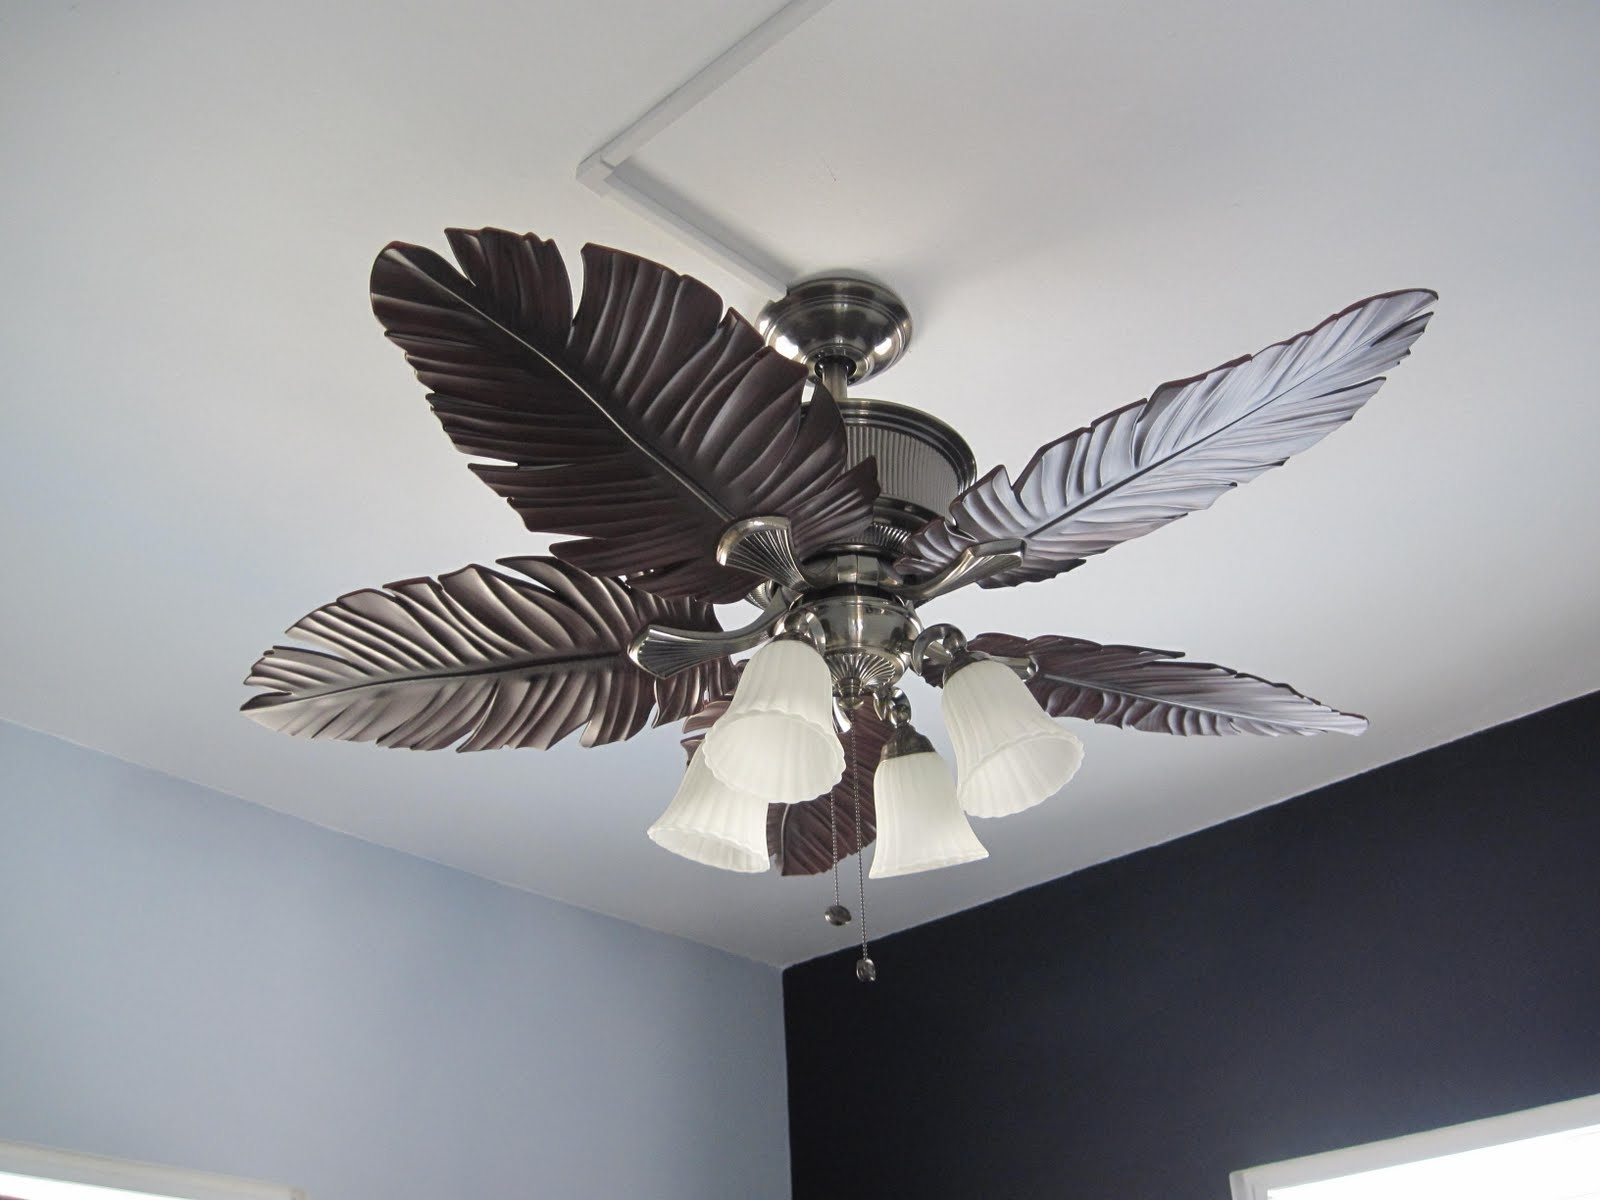 Tropical Design Outdoor Ceiling Fans Pertaining To Trendy Ceiling Lights : Tropical Ceiling Fans With Lights For Low Ceilings (View 15 of 20)